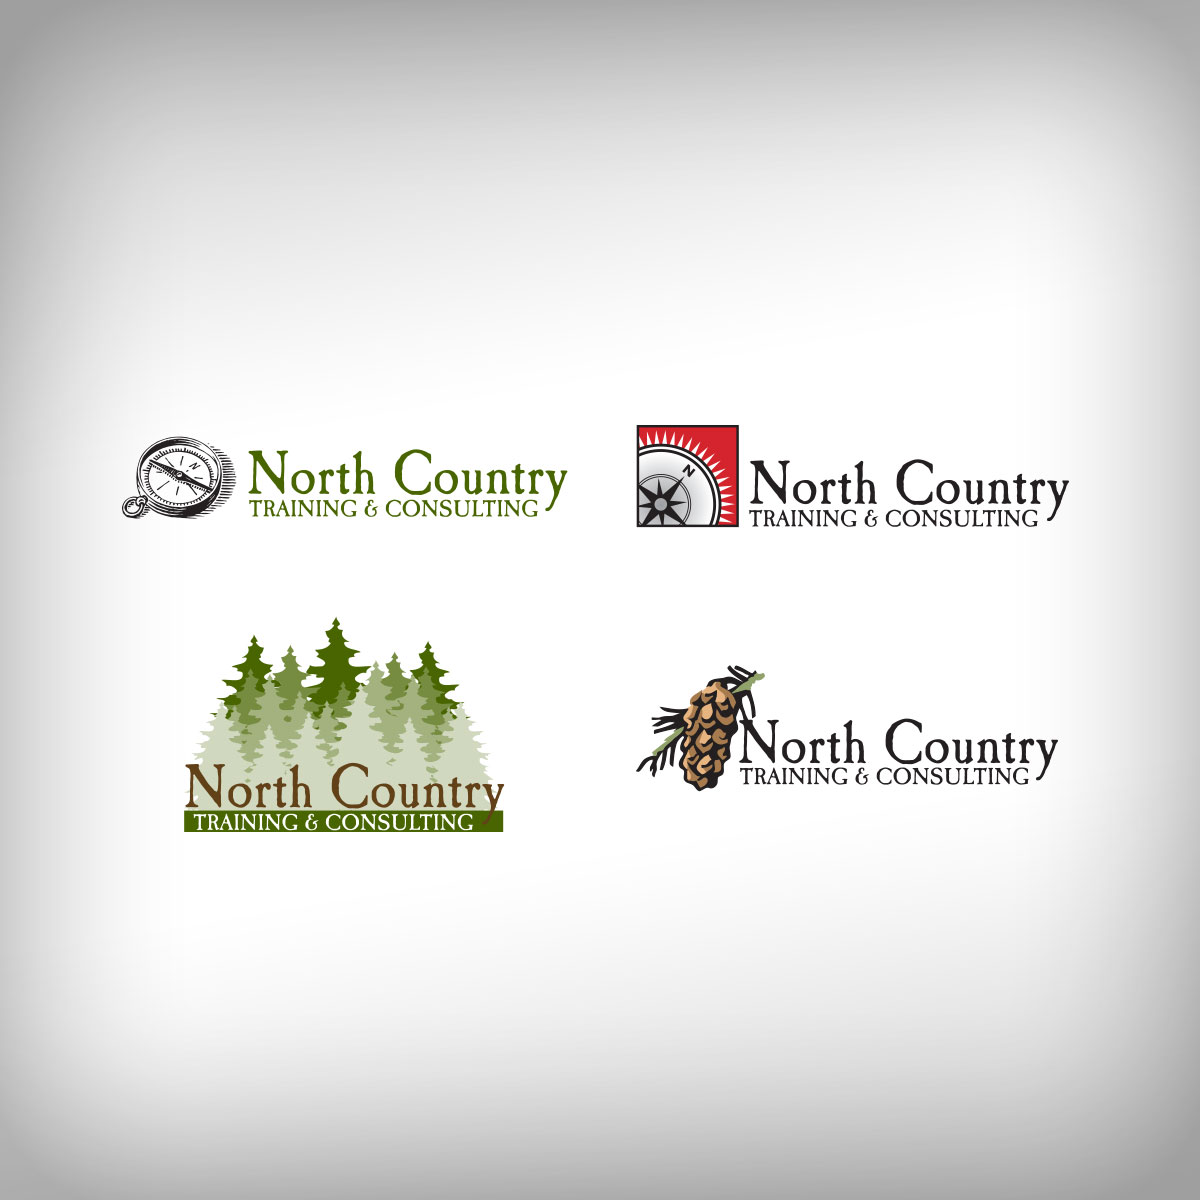 North Country Logo Ideas